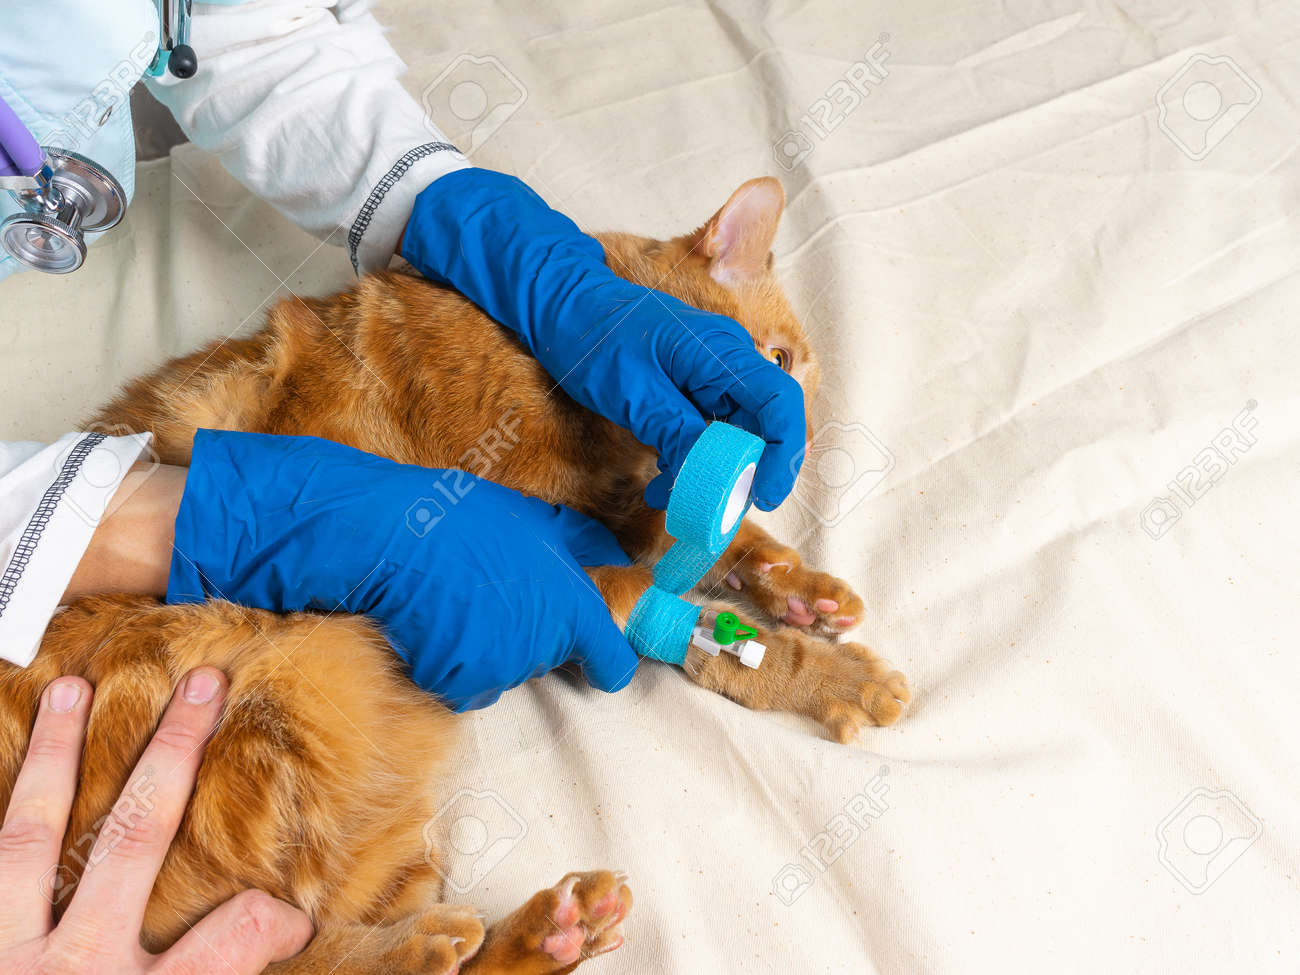 A bright red cat was put on a catheter. - 167533143